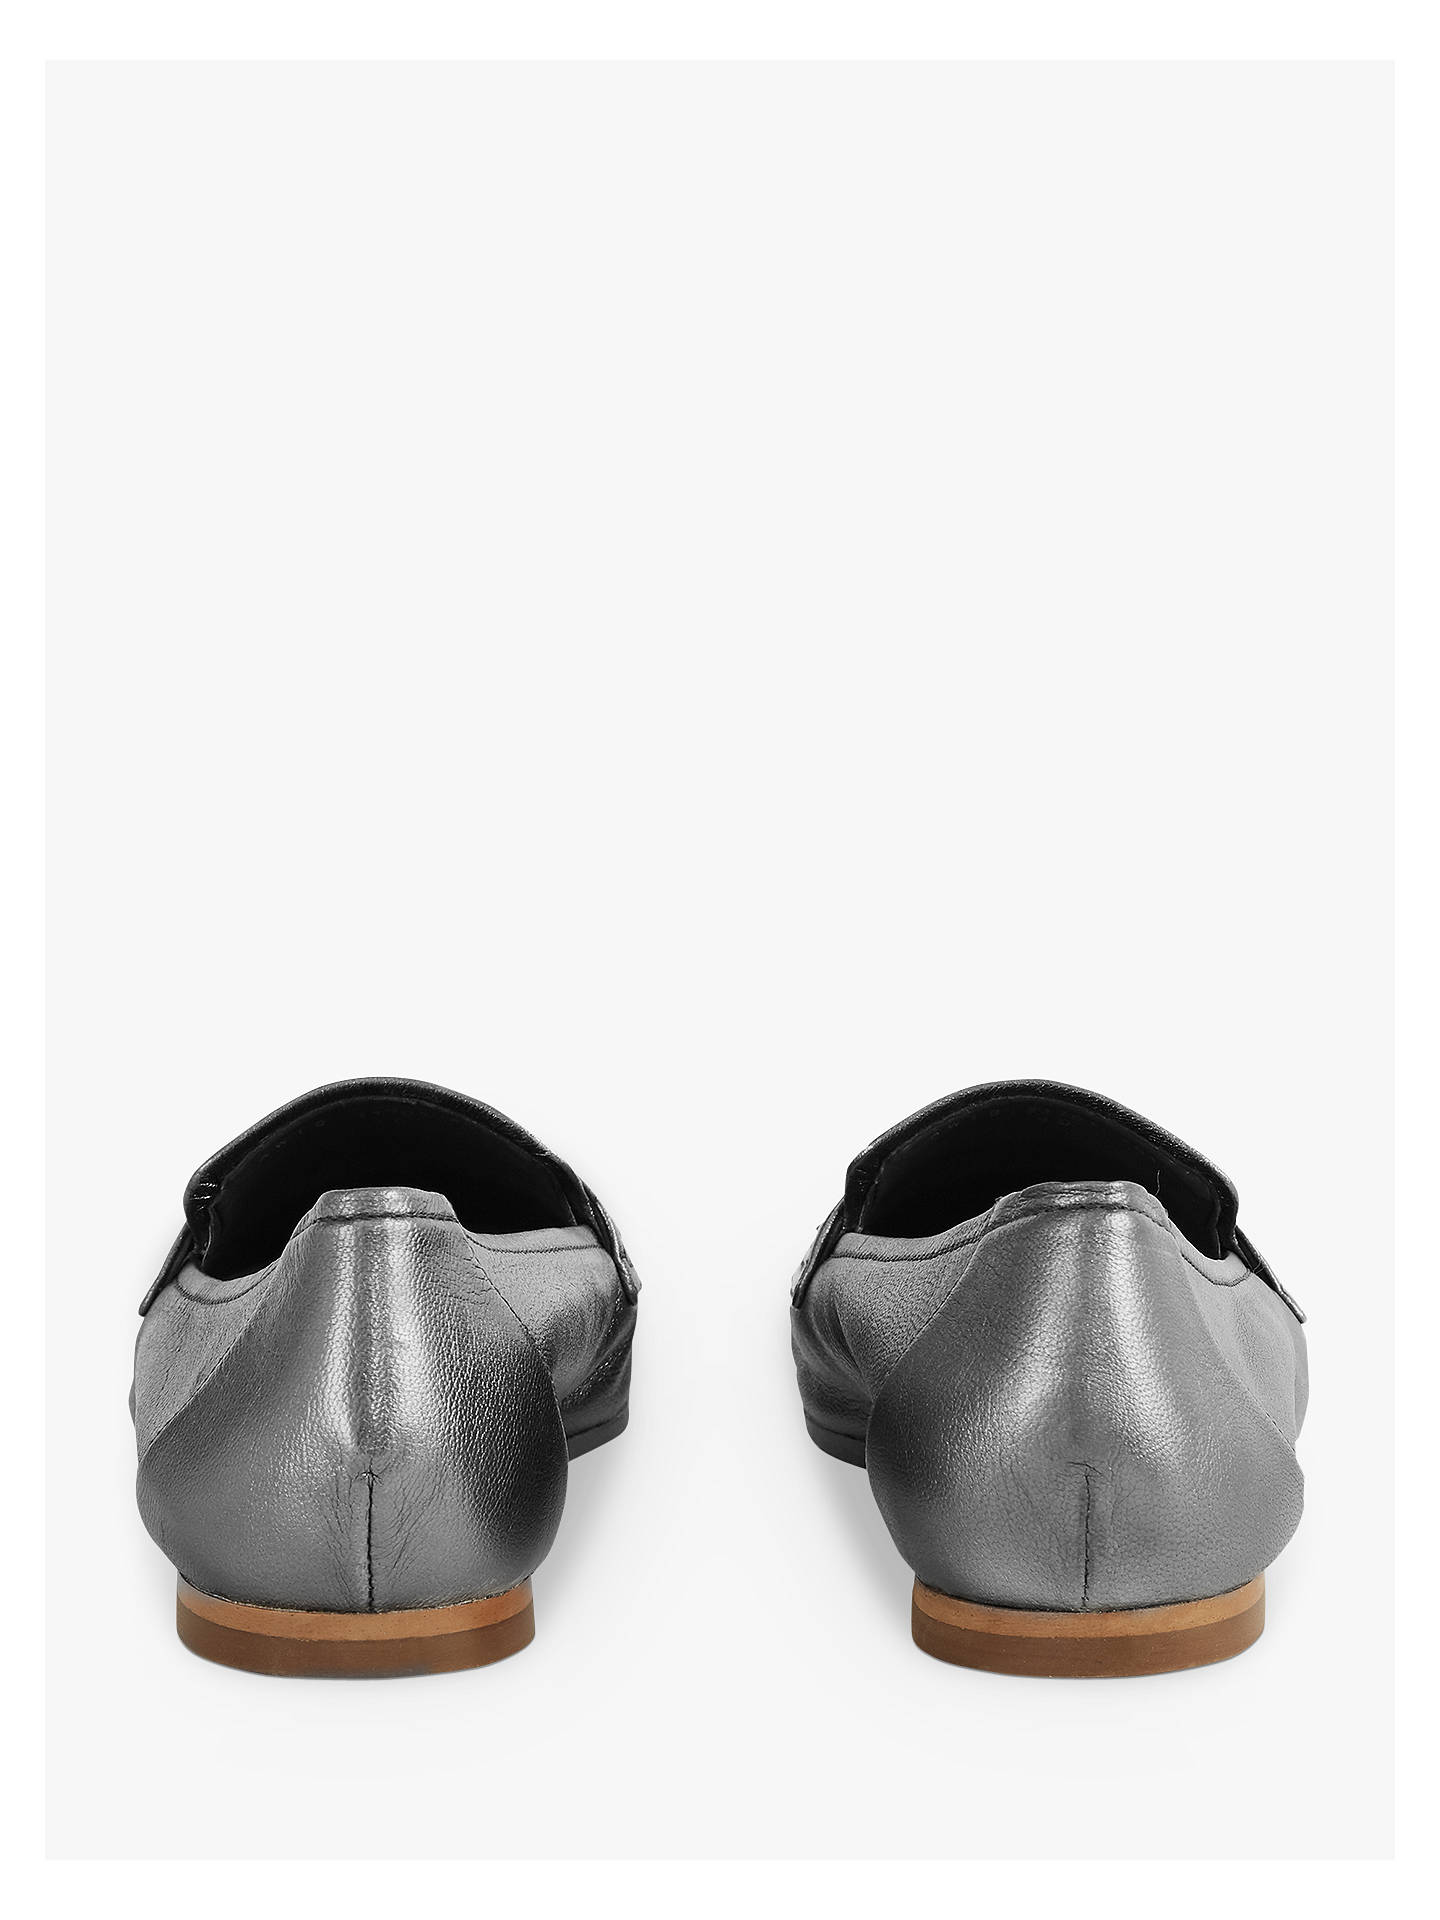 BuyReiss Elba Metallic Leather Loafers, Pewter, 4 Online at johnlewis.com